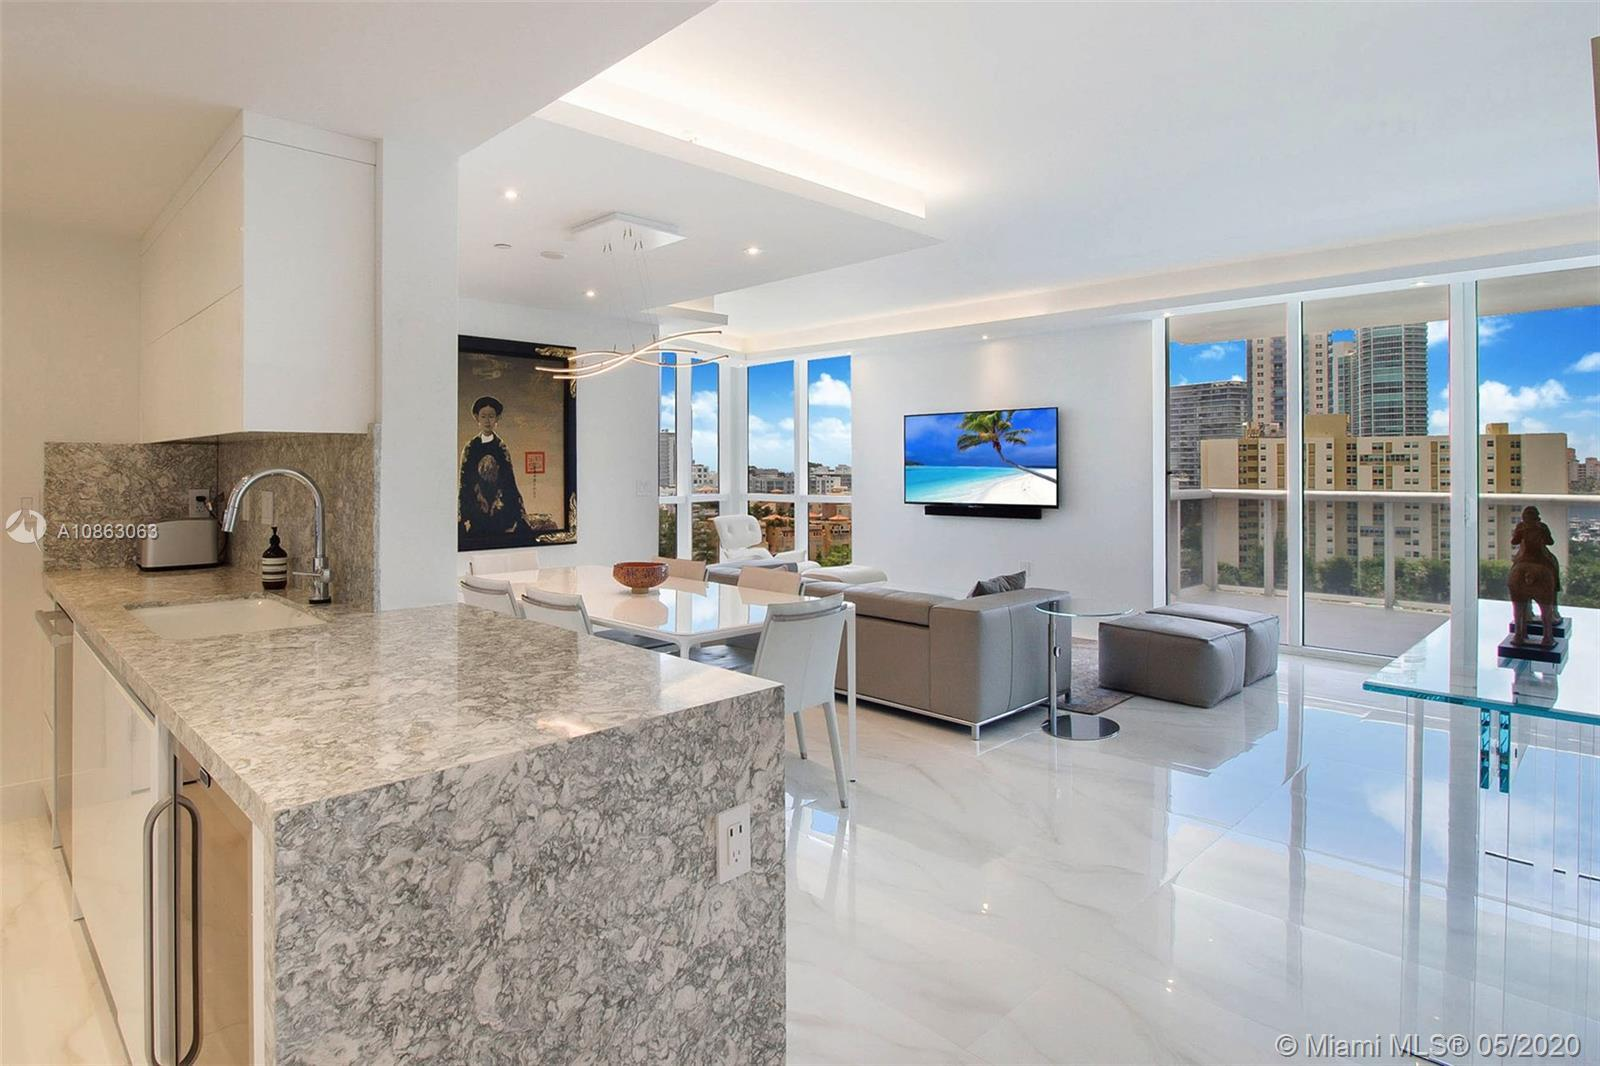 An upscale, fully-renovated corner apartment at the Murano Grande in South Beach.  This two bedroom